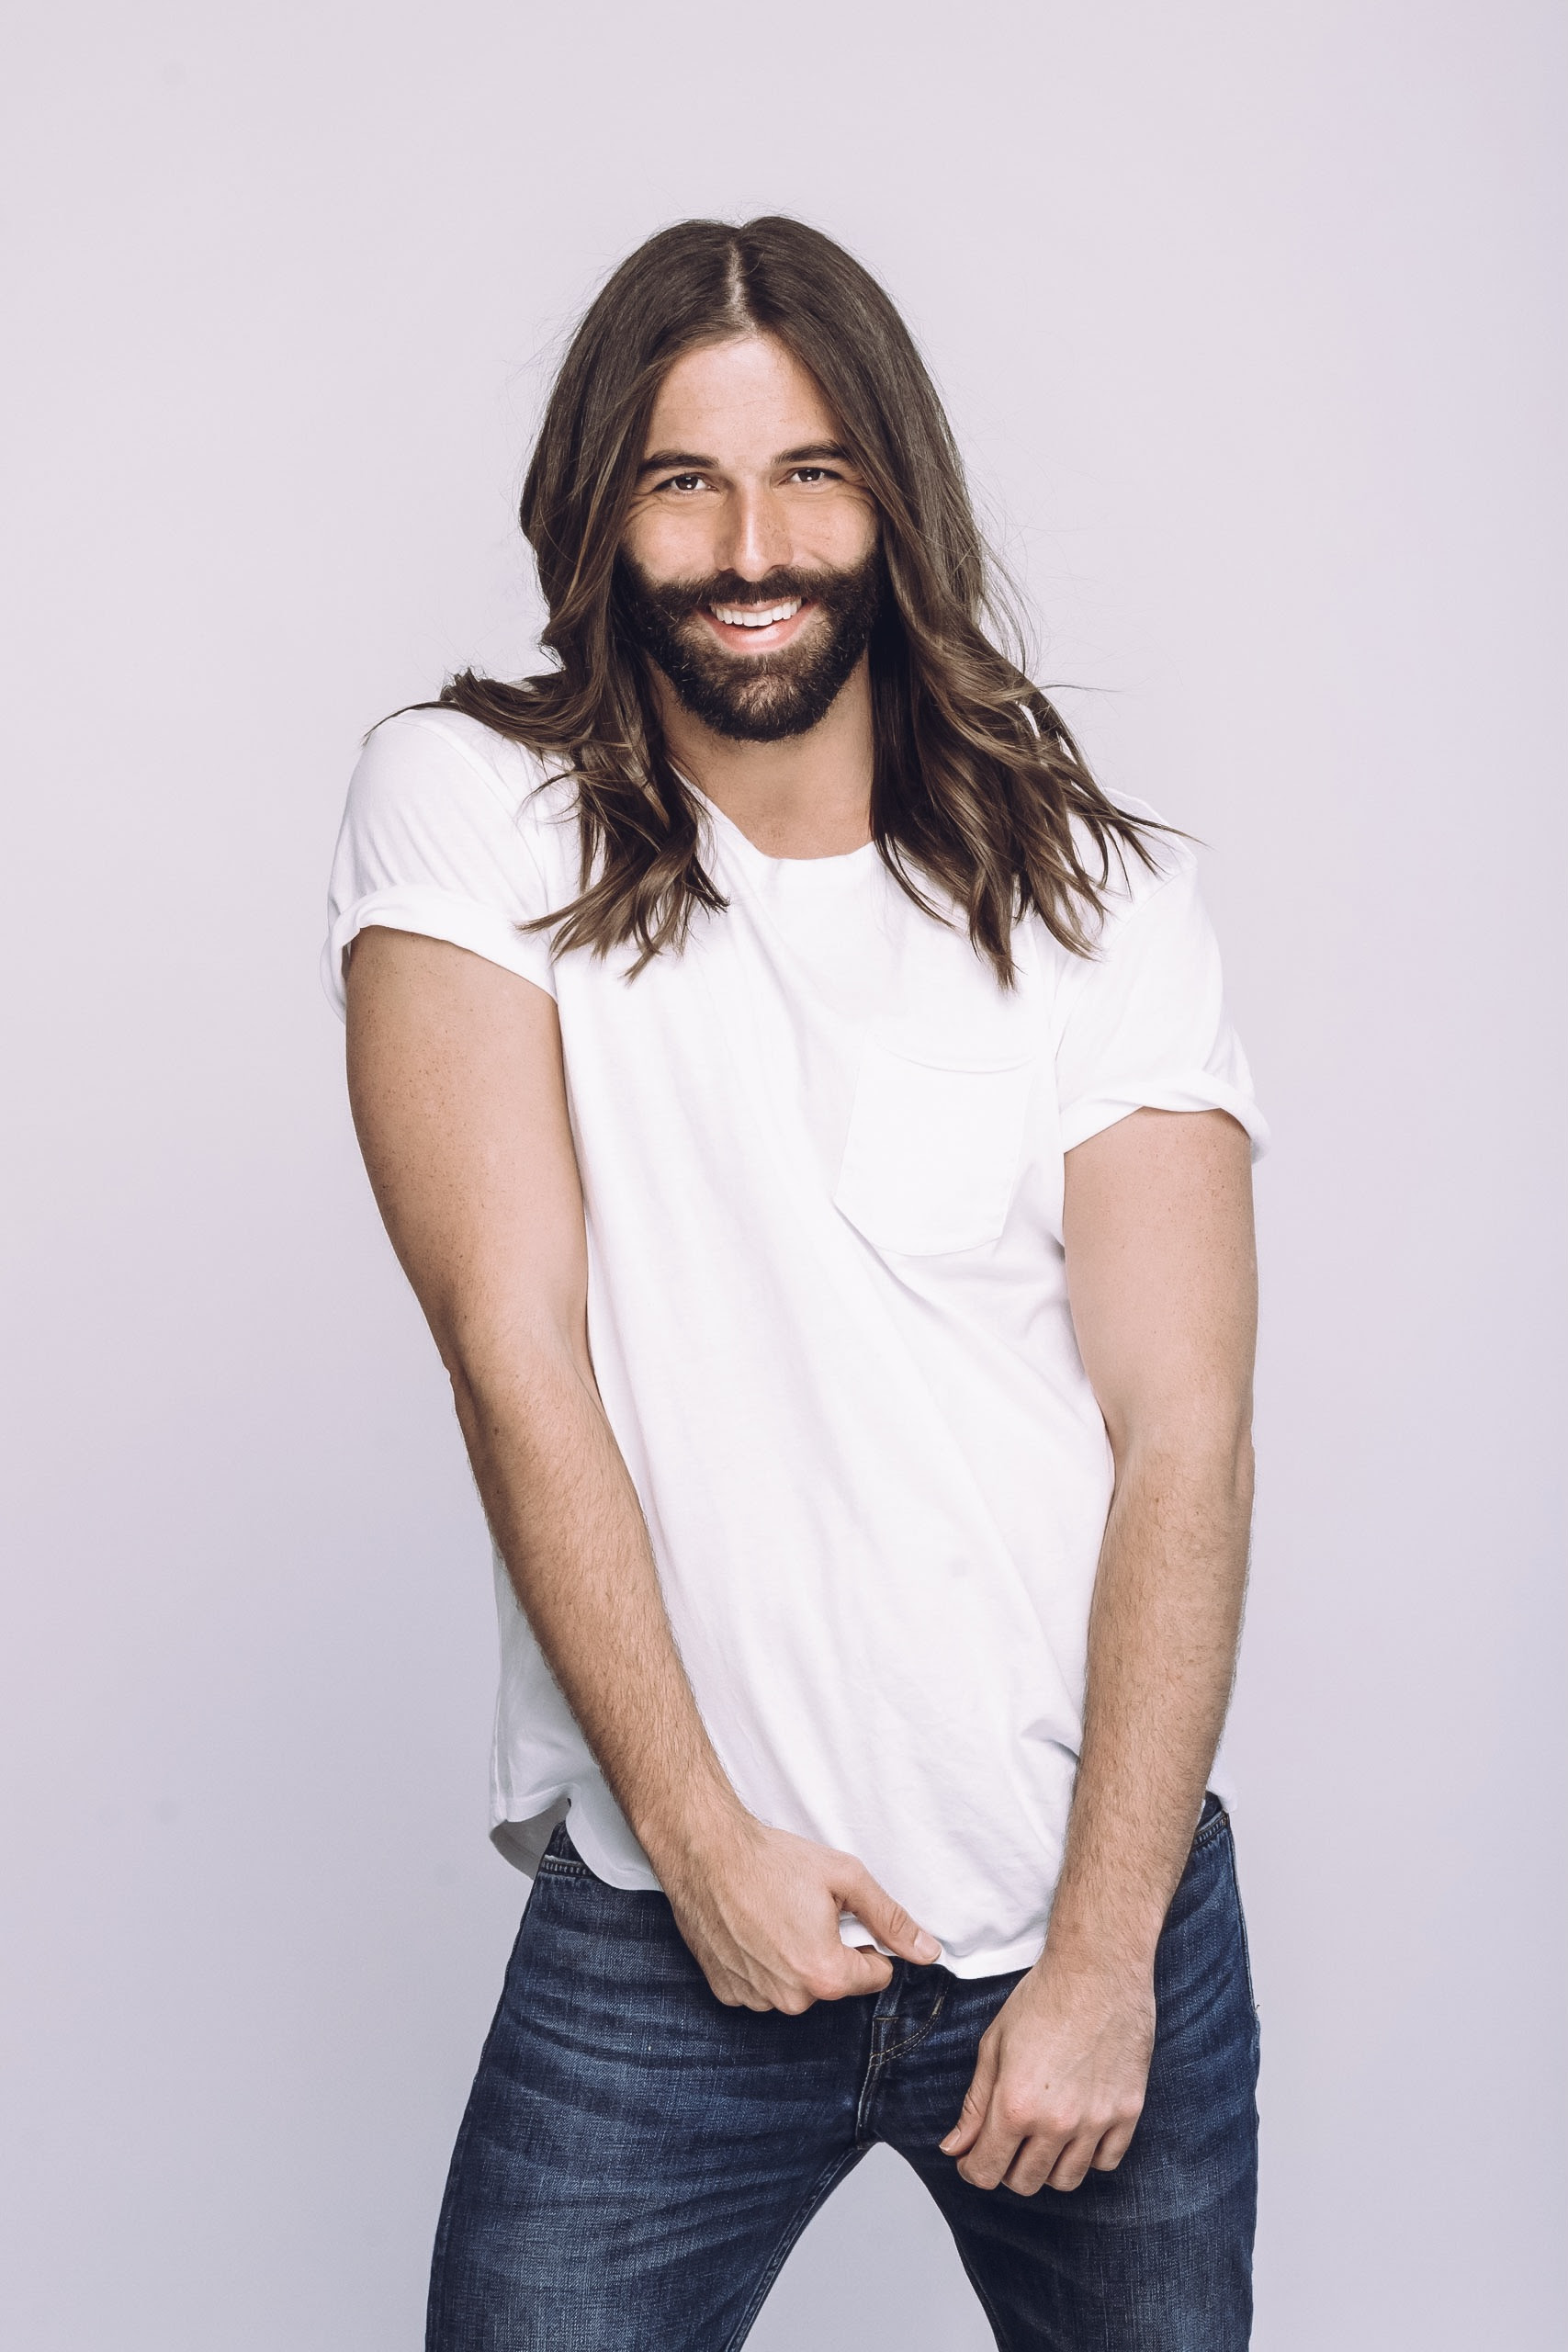 queer eye star jonathan van ness announces manchester apollo date about manchester. Black Bedroom Furniture Sets. Home Design Ideas